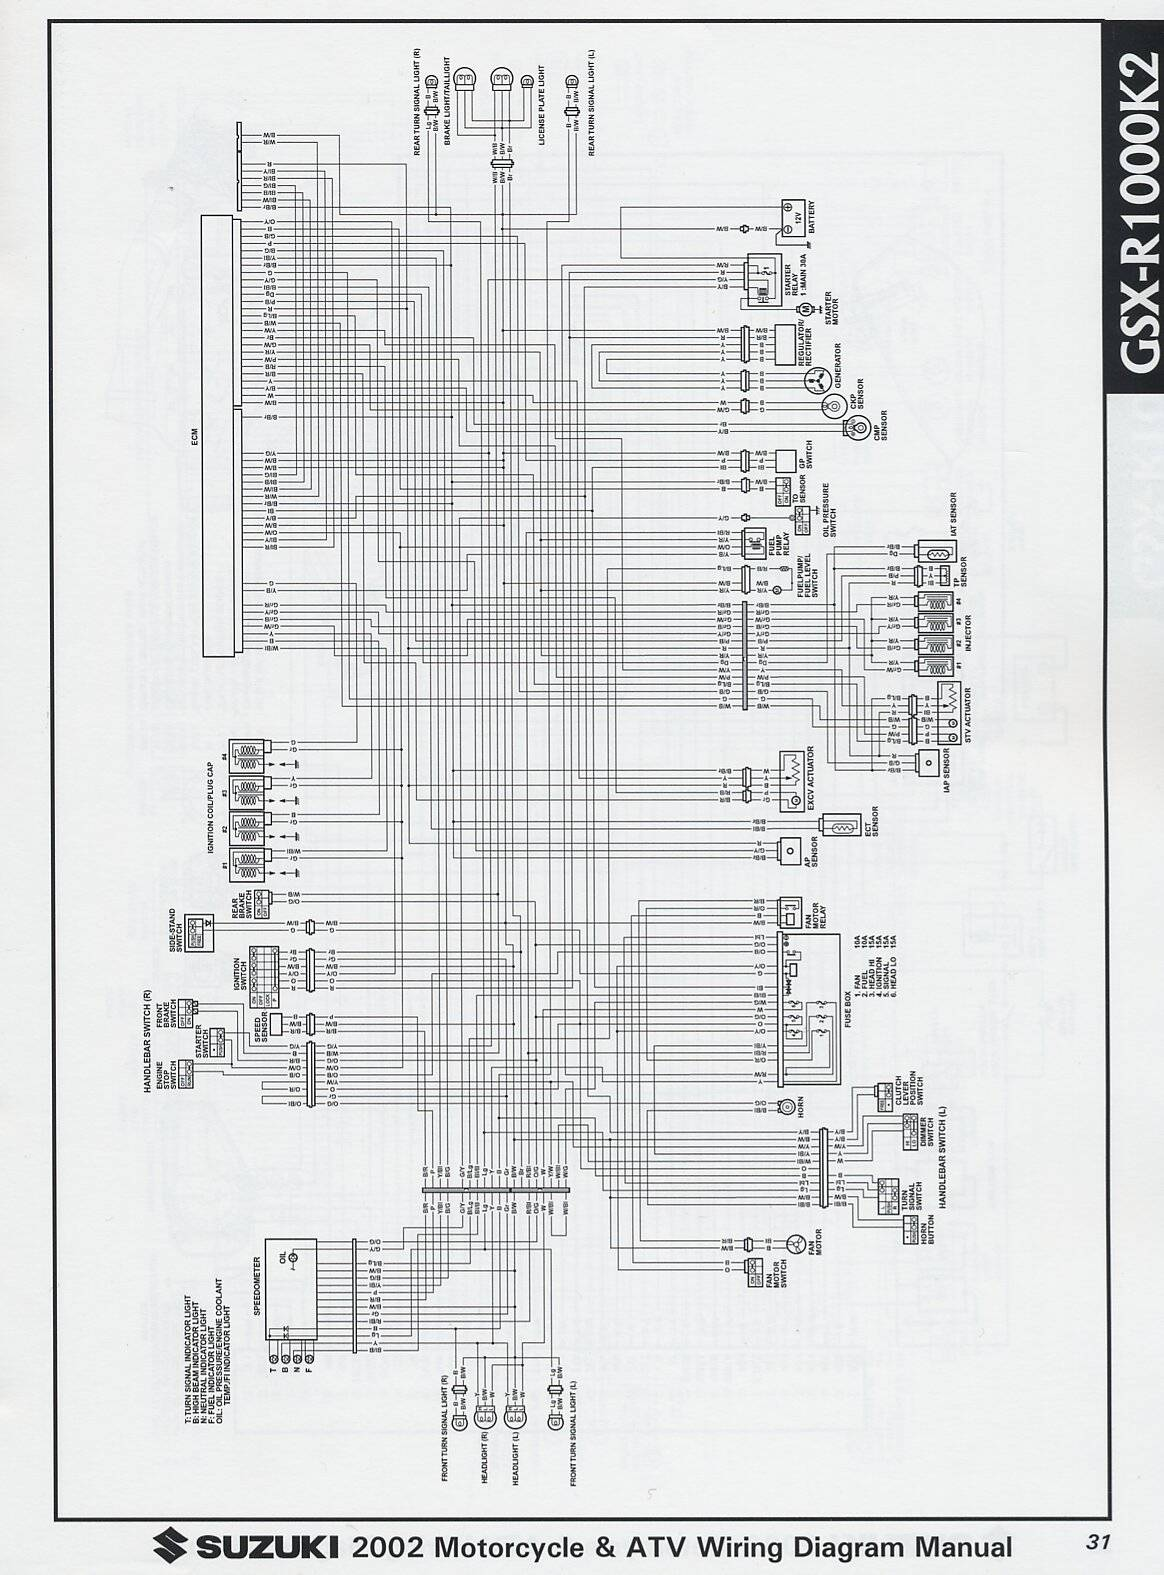 2002 Gsxr 1000 Ignition Wiring Diagram - Reversible Electric Motor Wiring  Diagram for Wiring Diagram SchematicsWiring Diagram Schematics